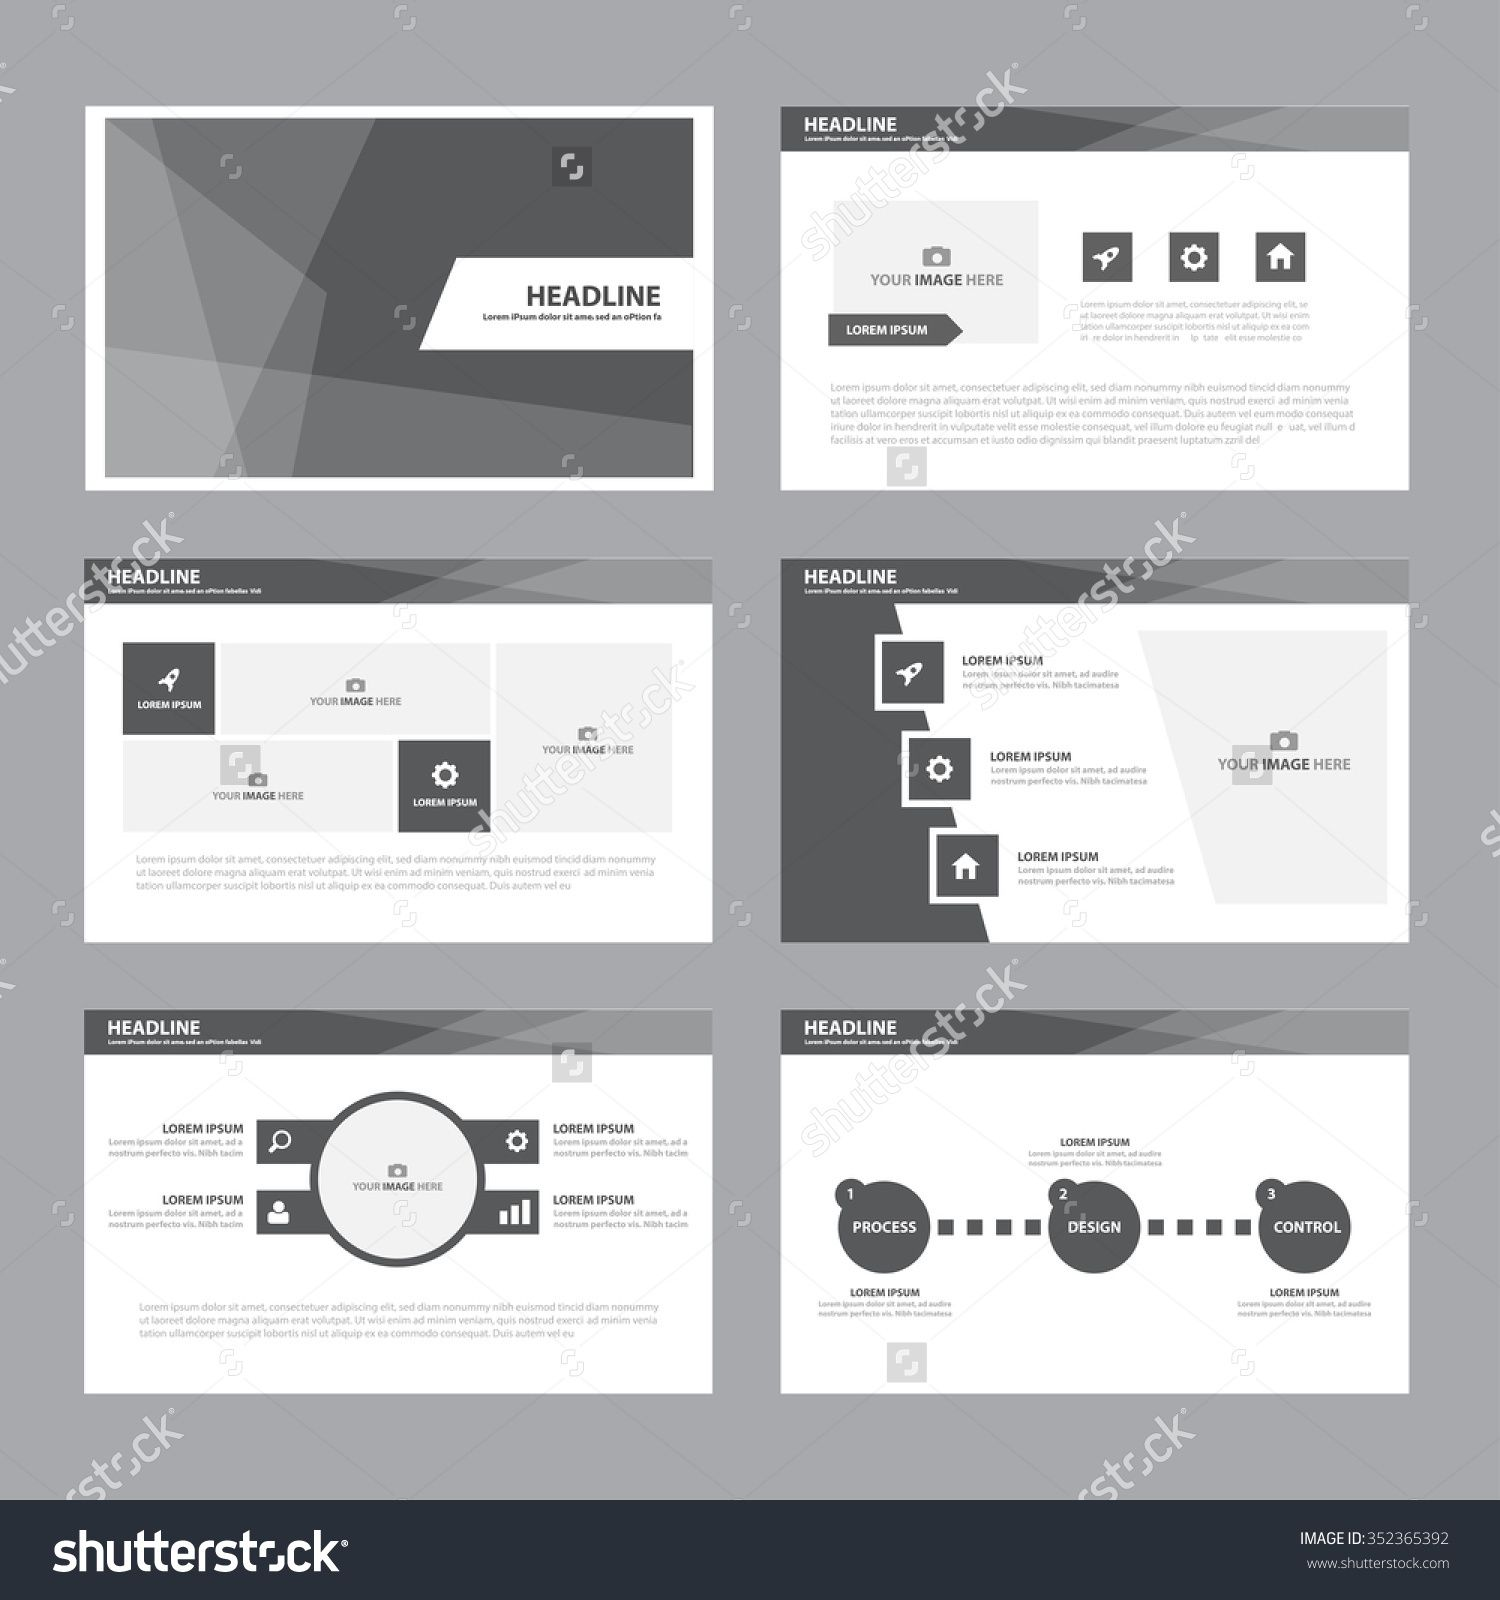 Black White Presentation Template Infographic Elements Flat Design